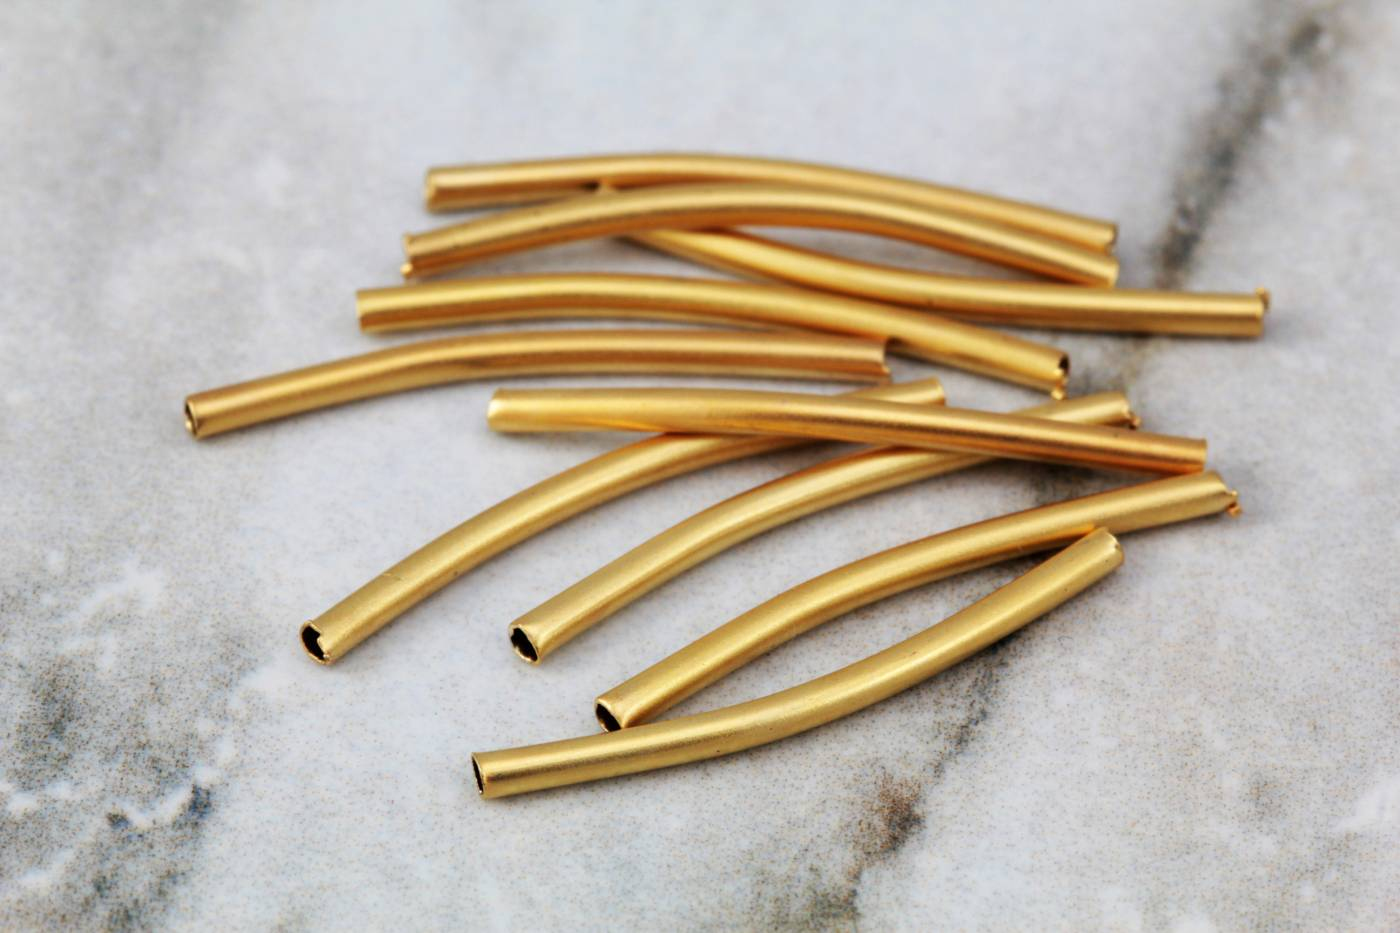 24mm-gold-long-curved-end-bar-charms.jpg